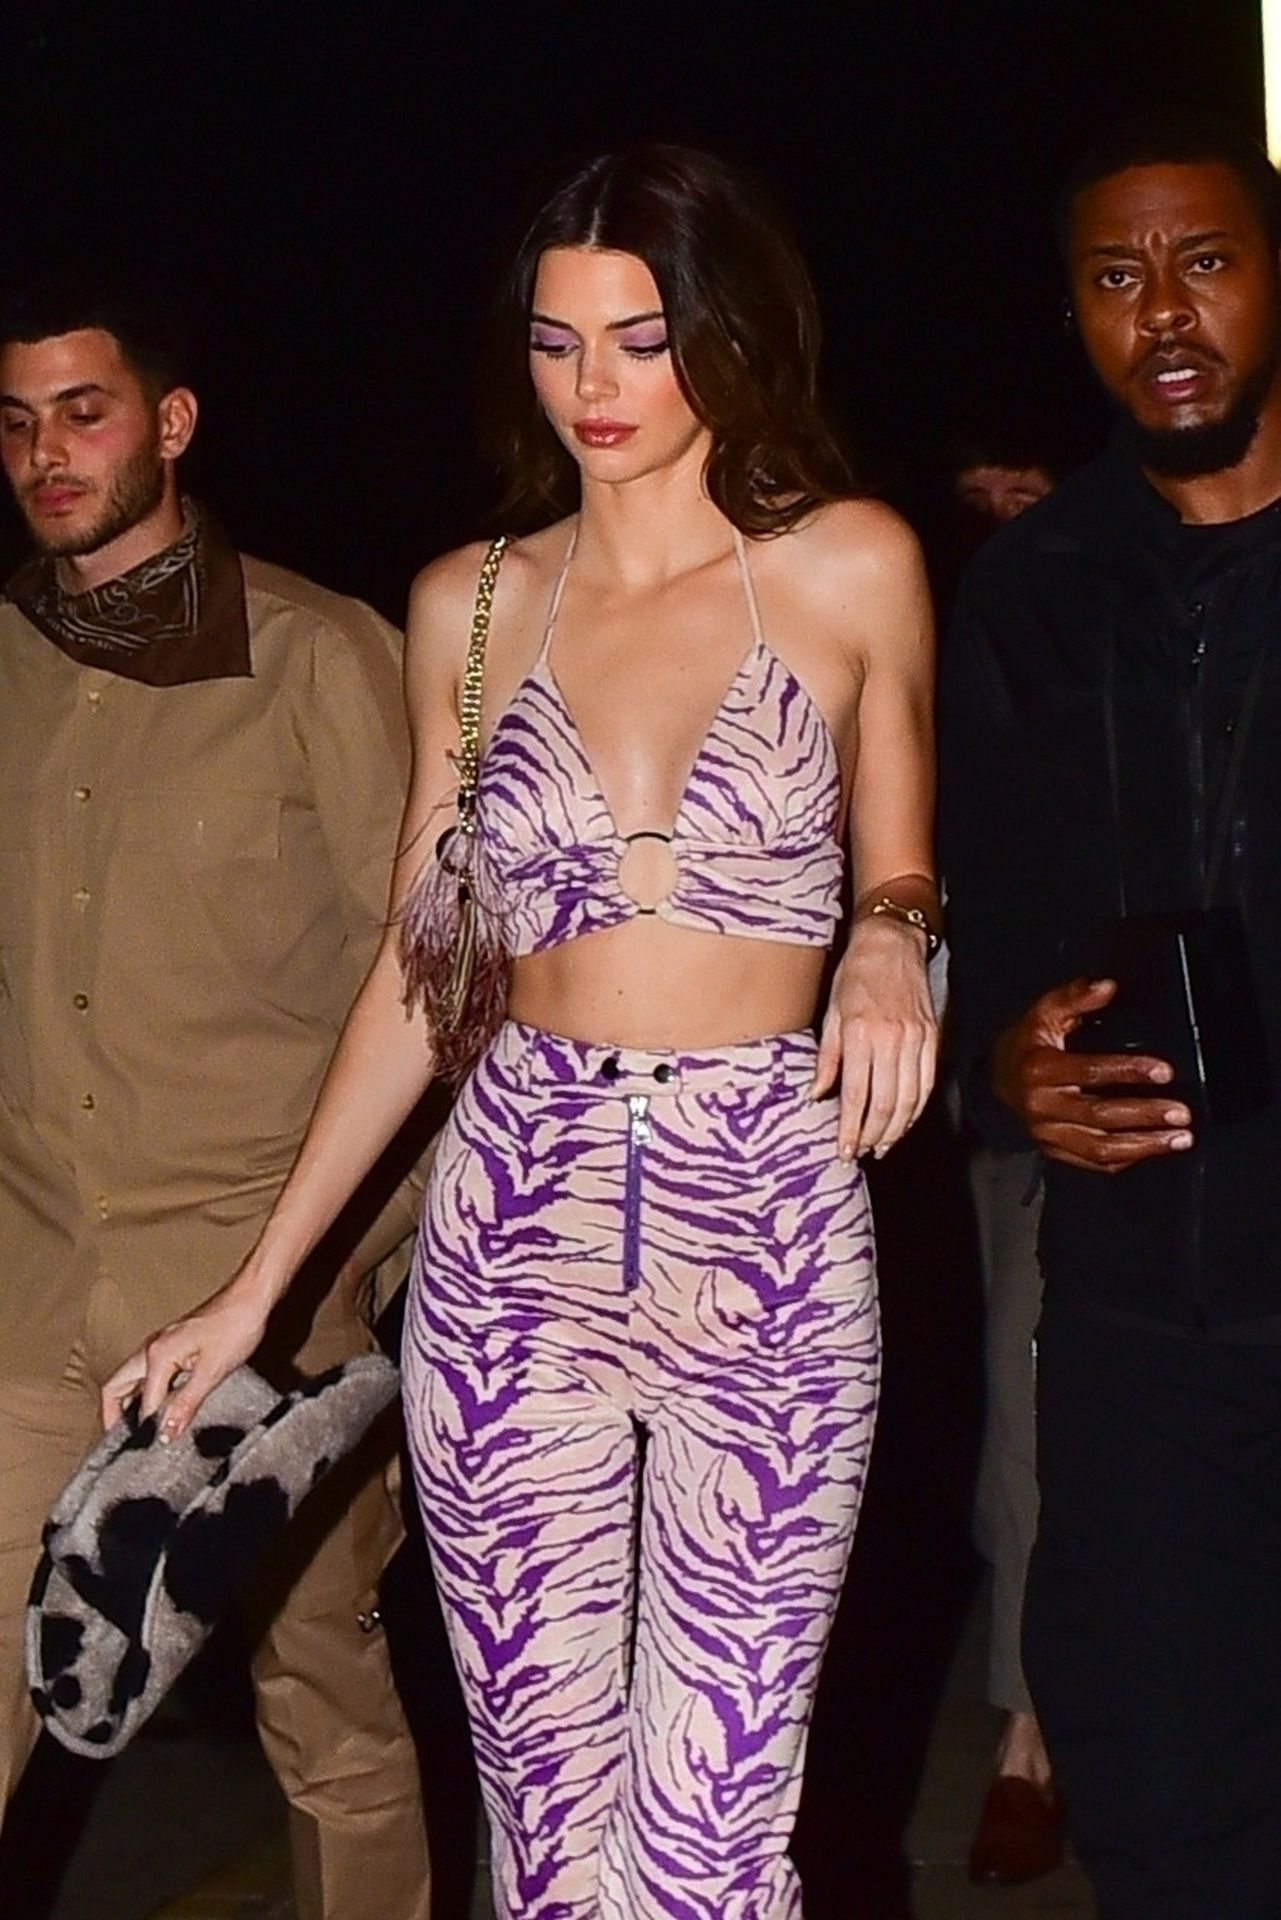 Kendall Jenner Gets Camera Shy While Leaving A Party At Shorebar 0052